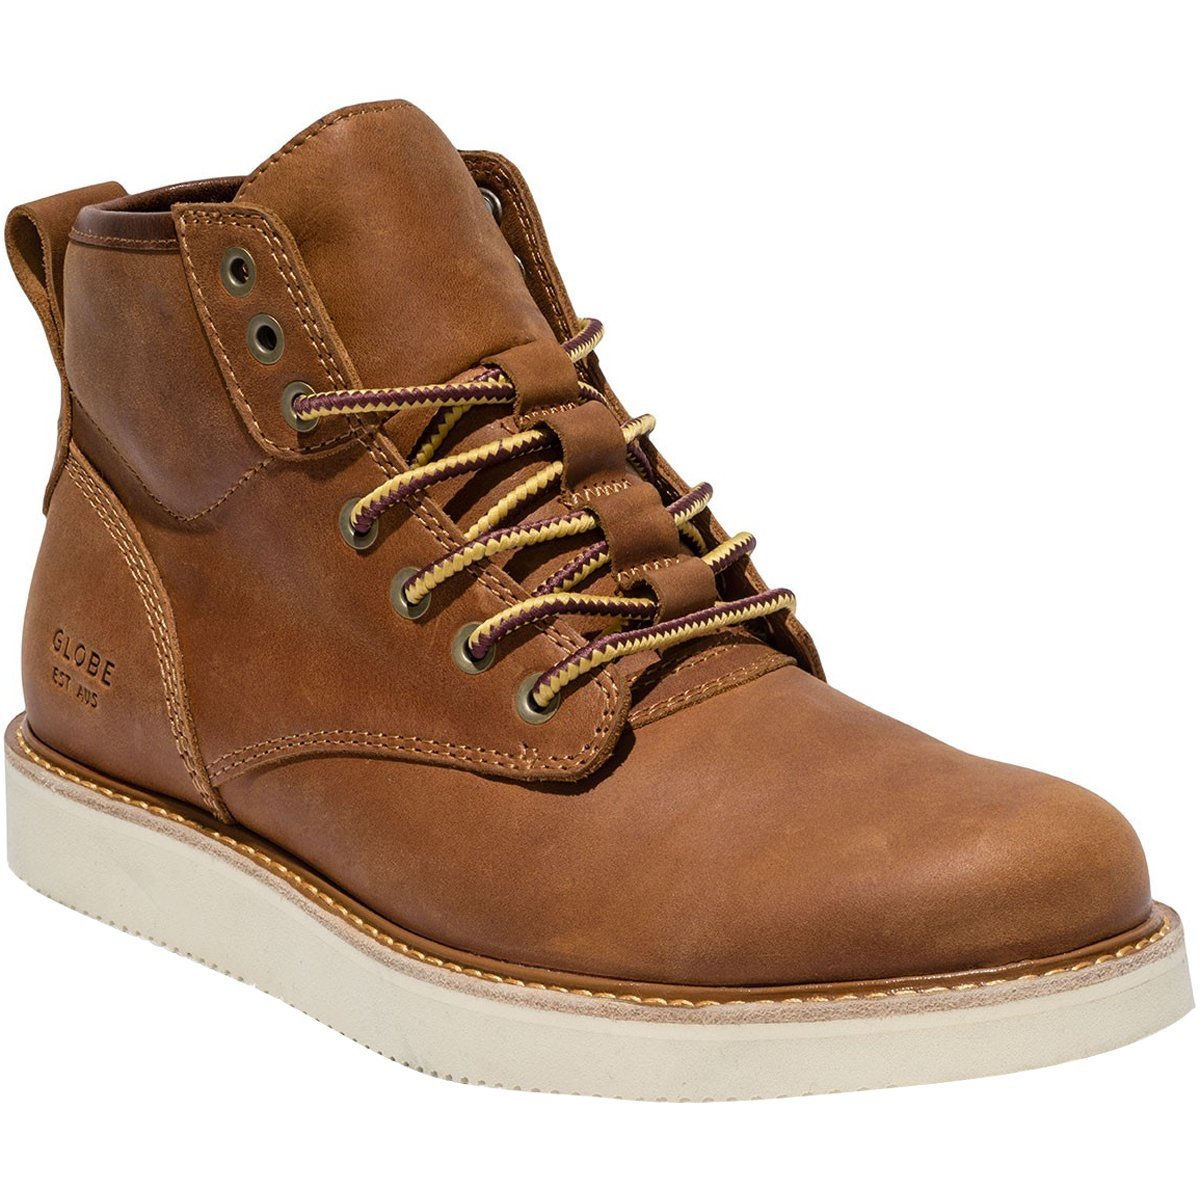 a4b8034dee28 Globe Men's Nomad Sneaker Boot: Buy Online at Low Prices in India ...